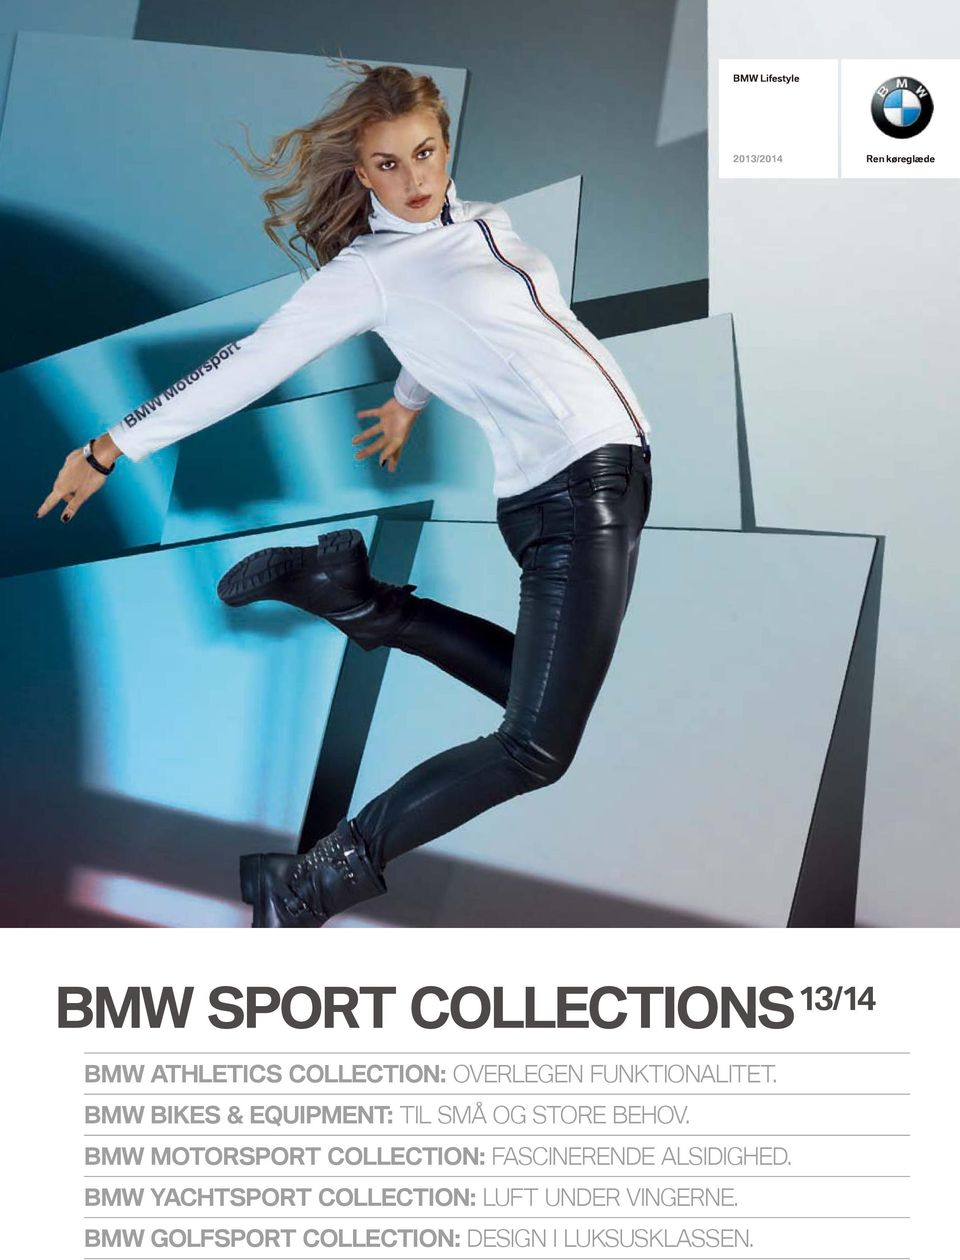 BMW BIKES & EQUIPMENT: TIL SMÅ OG STORE BEHOV.